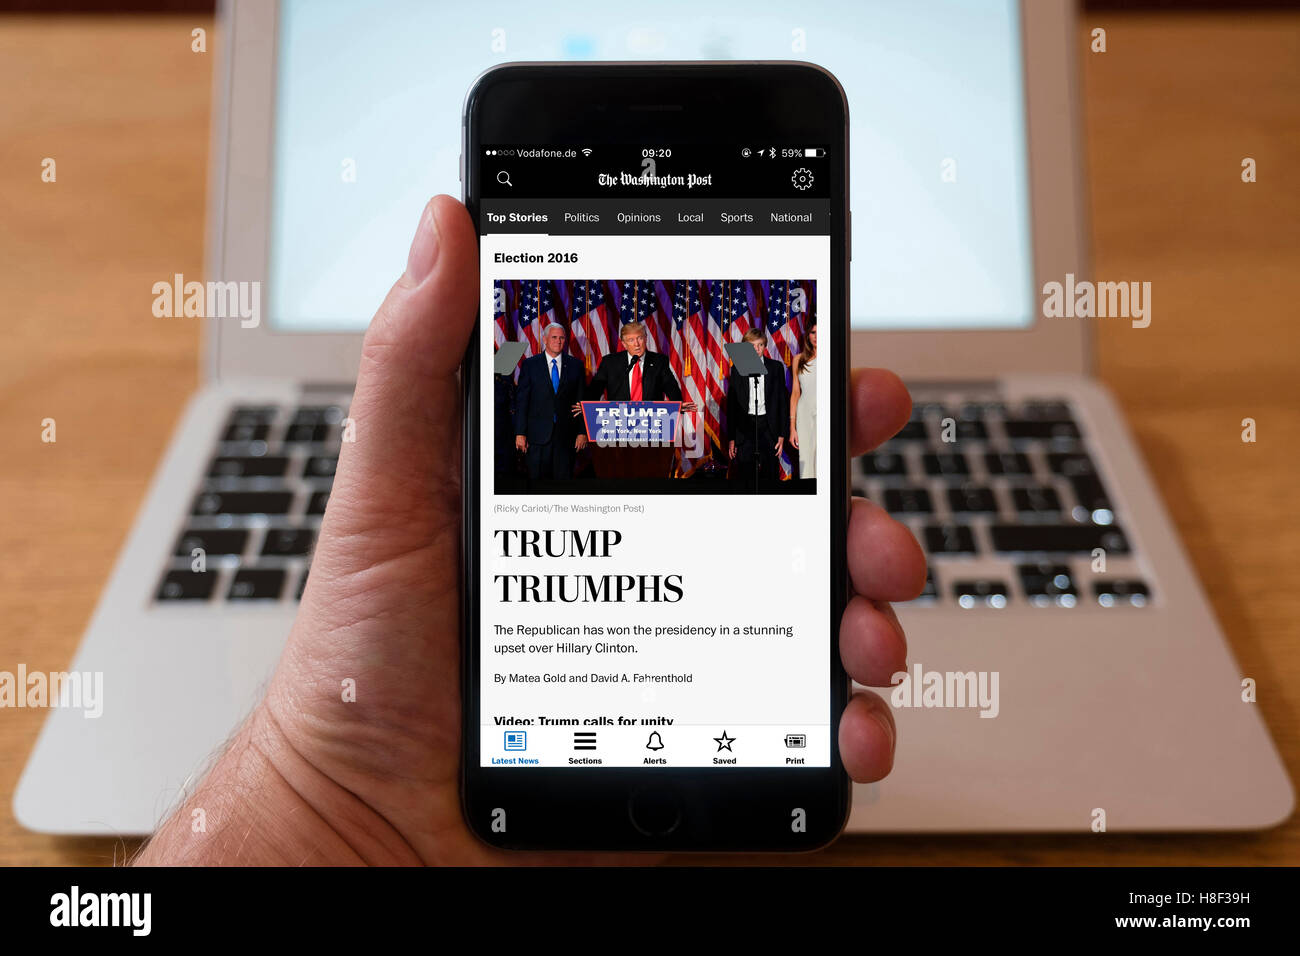 Detail of iPhone smart phone showing online mobile  newspaper front-page headline from The Washington Post following - Stock Image